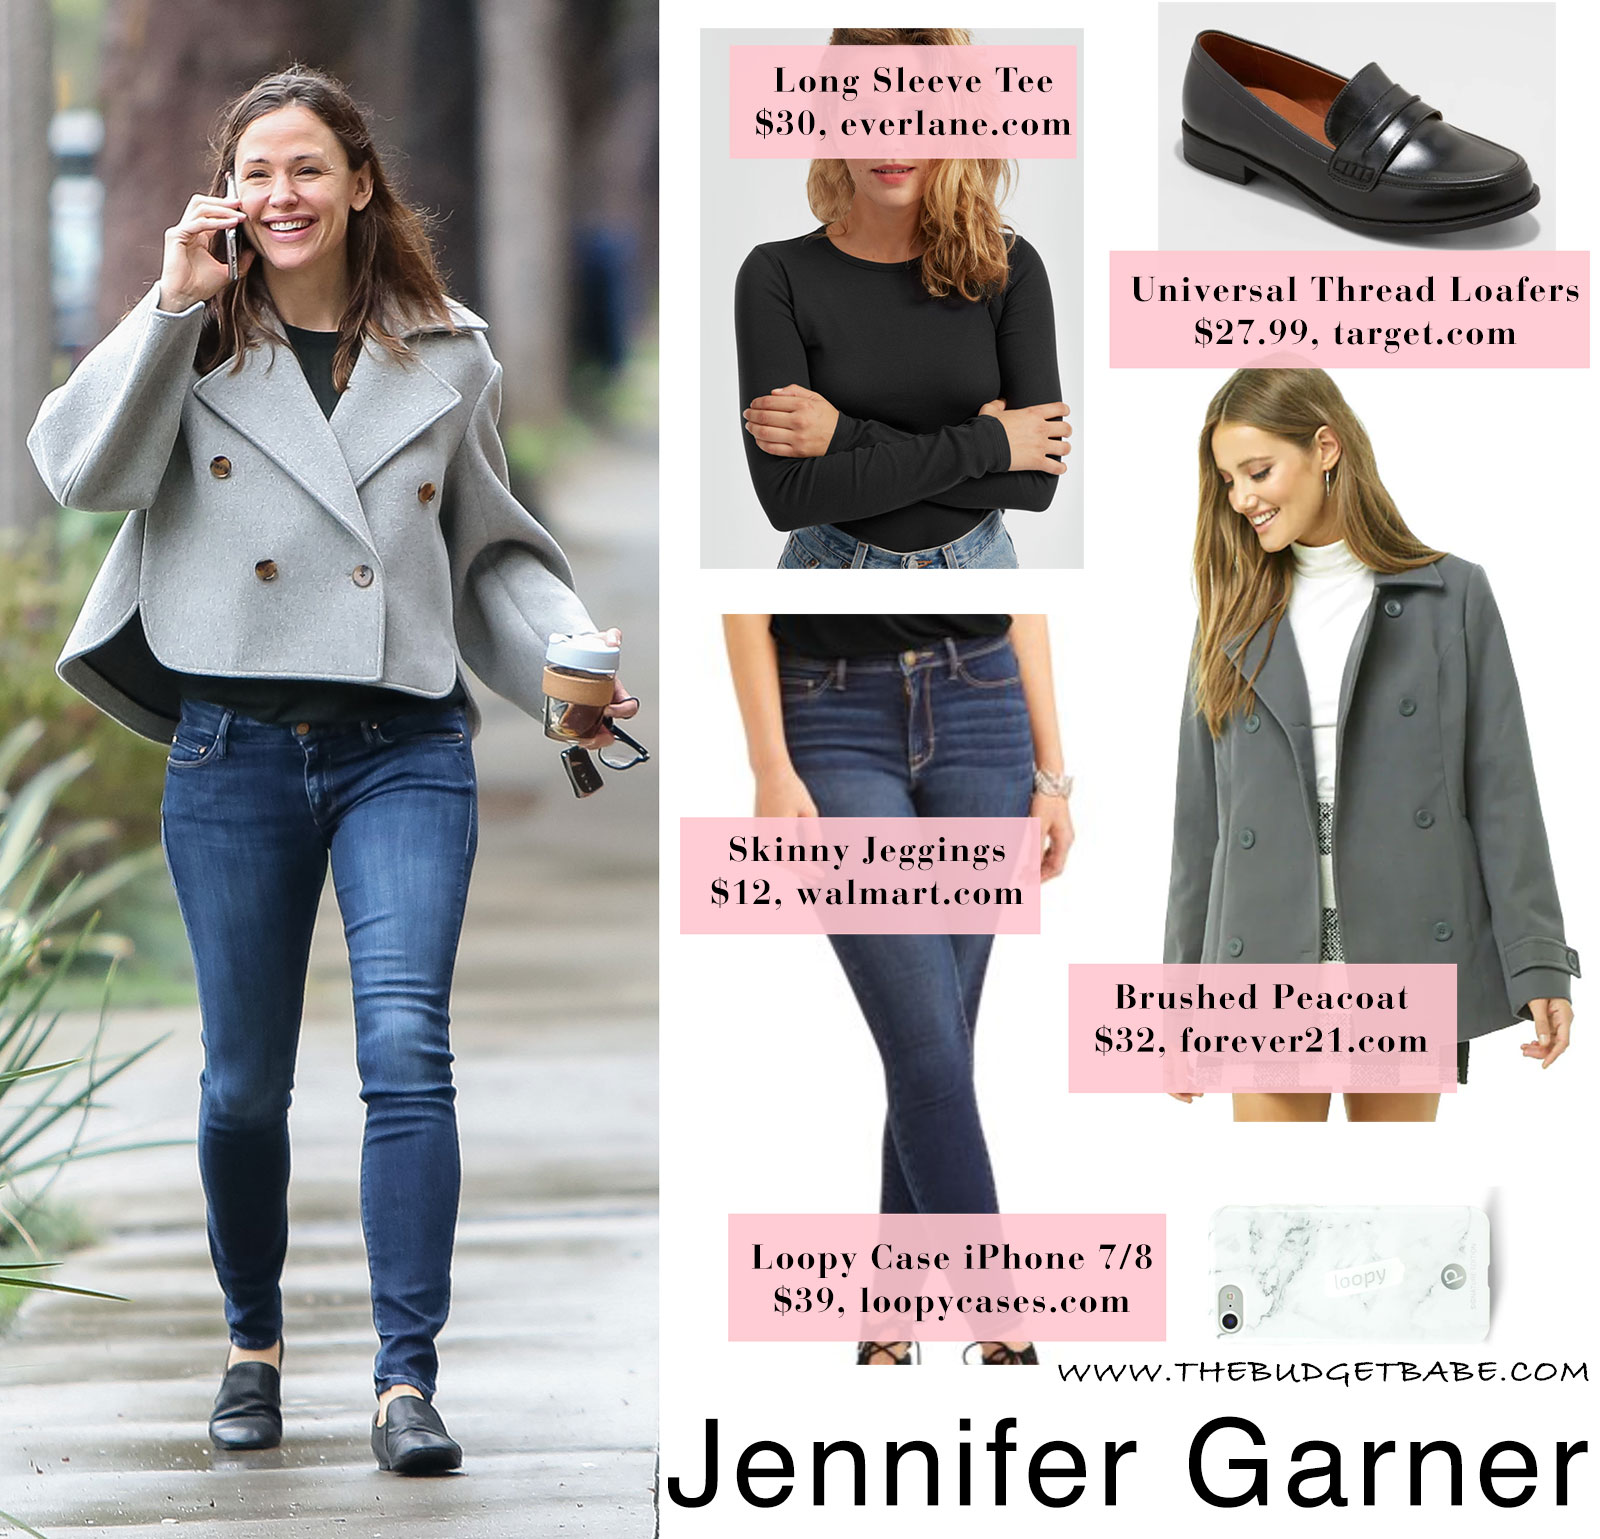 Jennifer Garner's moto jacket look for less